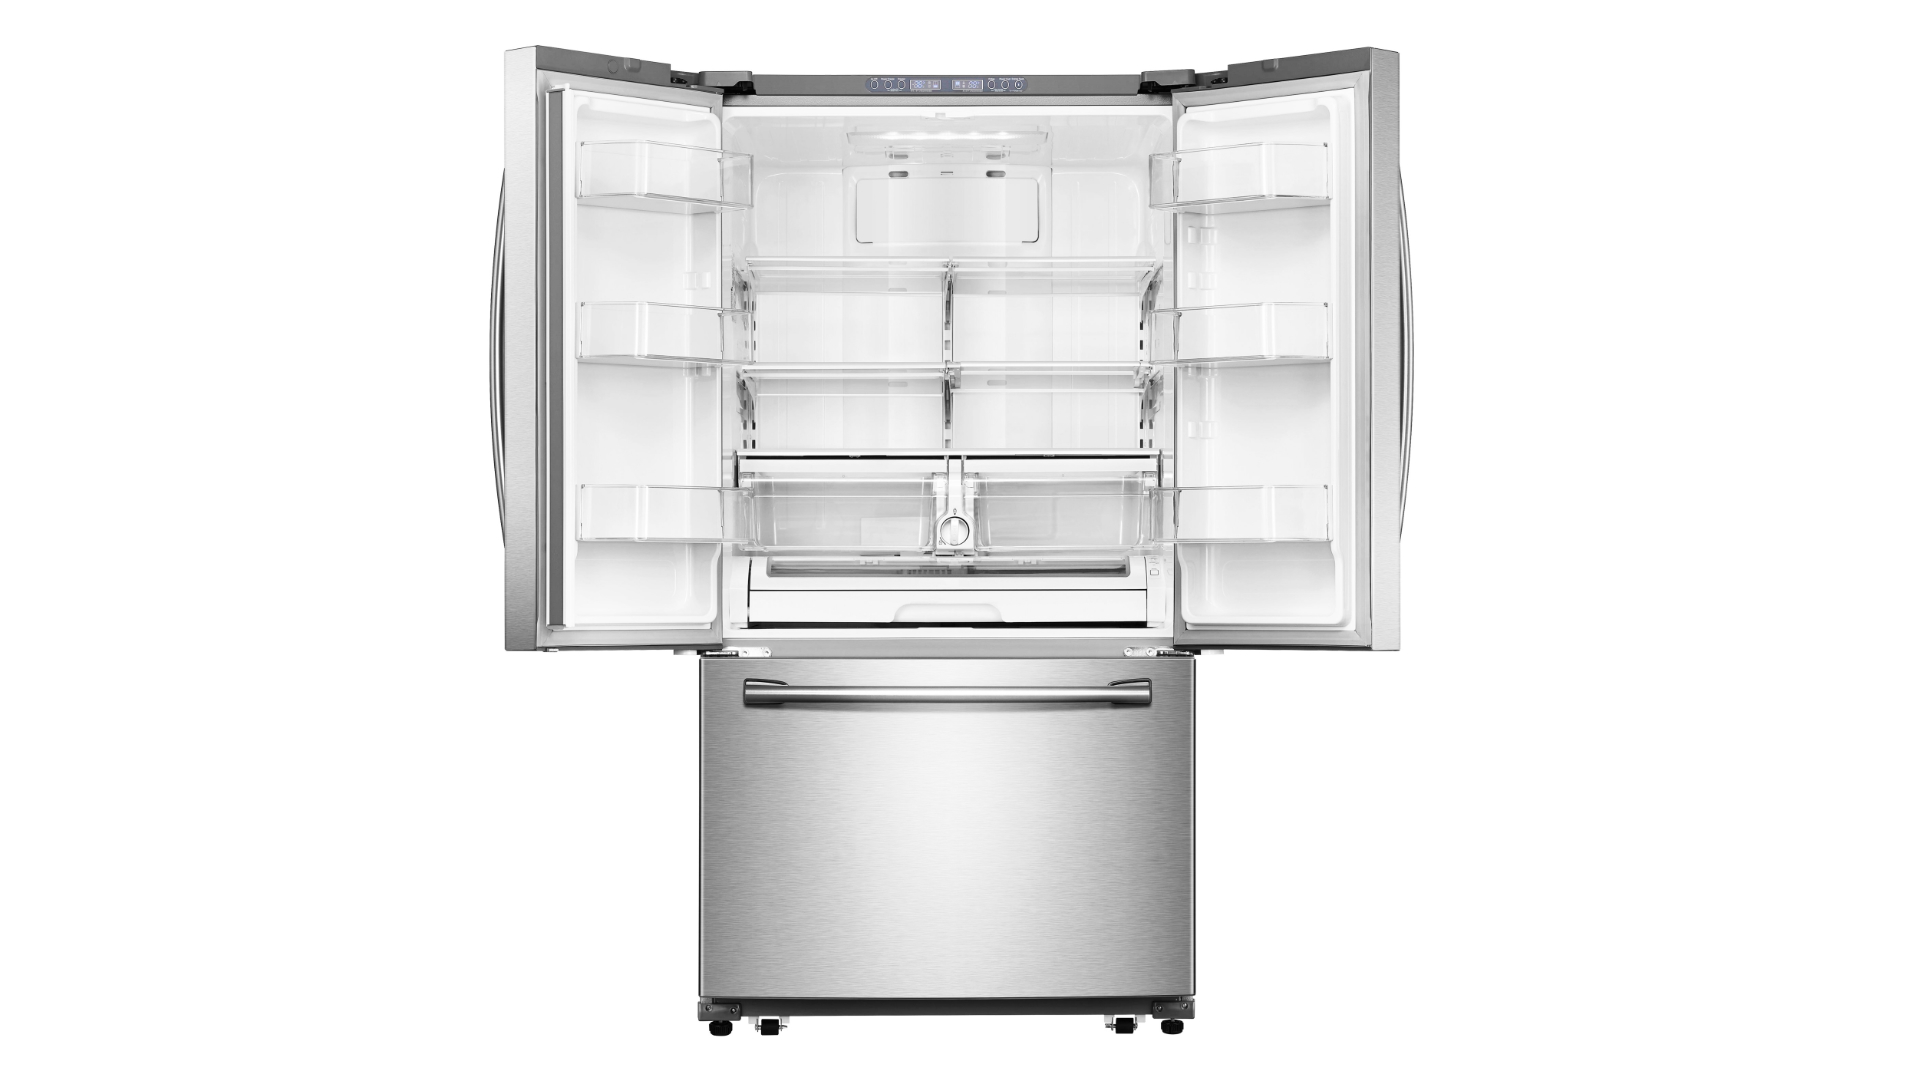 """Featured image for """"Why Your Samsung Refrigerator is Making Less Ice Than Normal"""""""